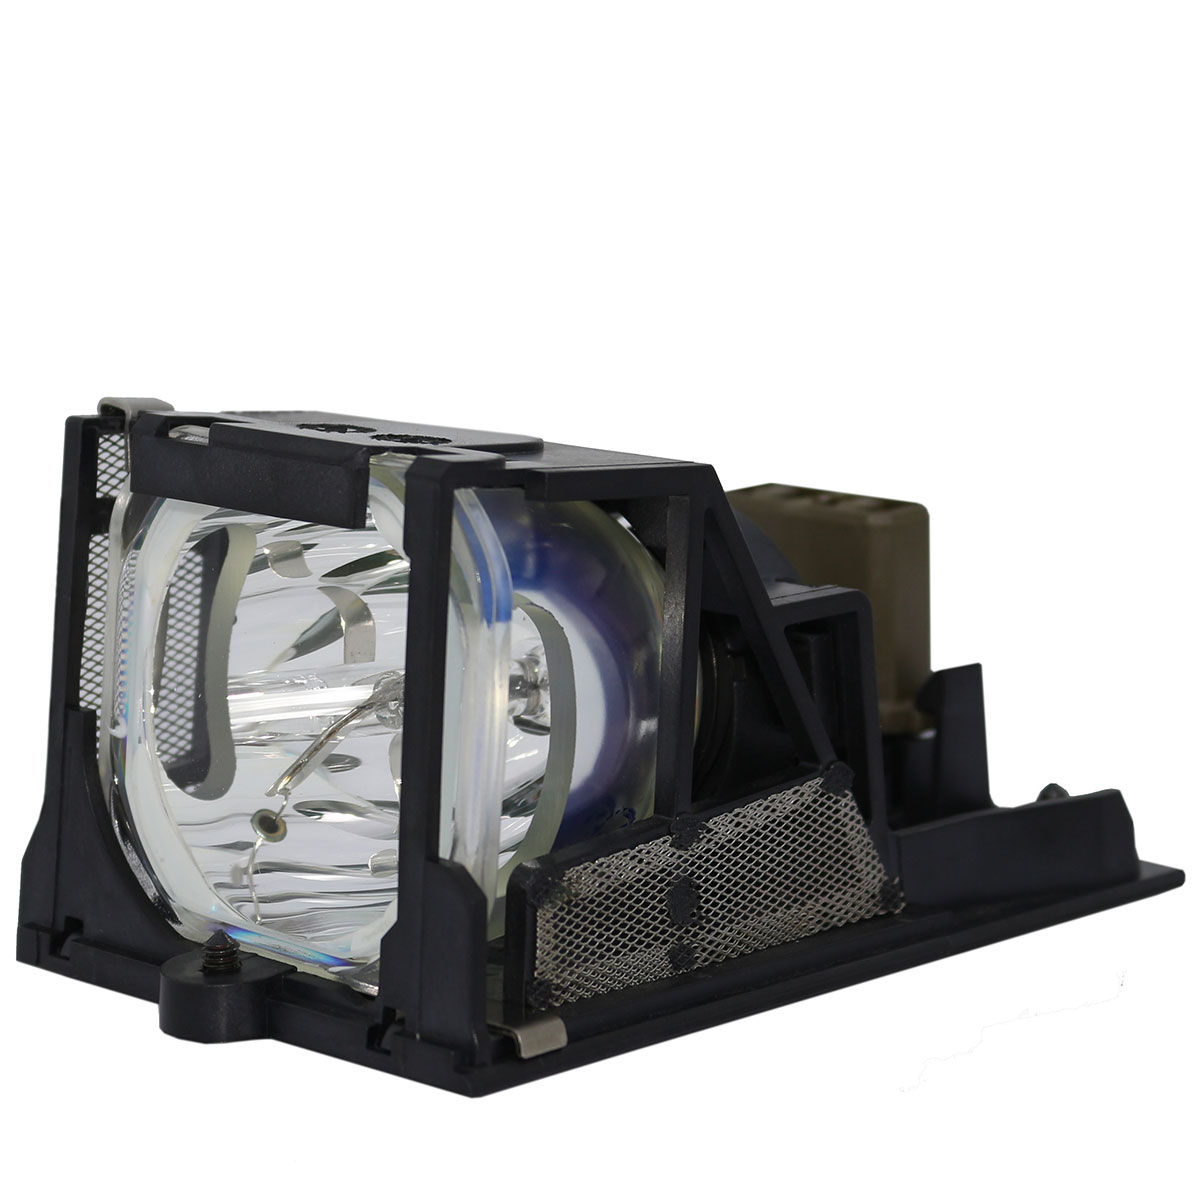 Original Osram Projector Lamp Replacement for Boxlight XD5M-930 (Bulb Only) - image 5 de 5